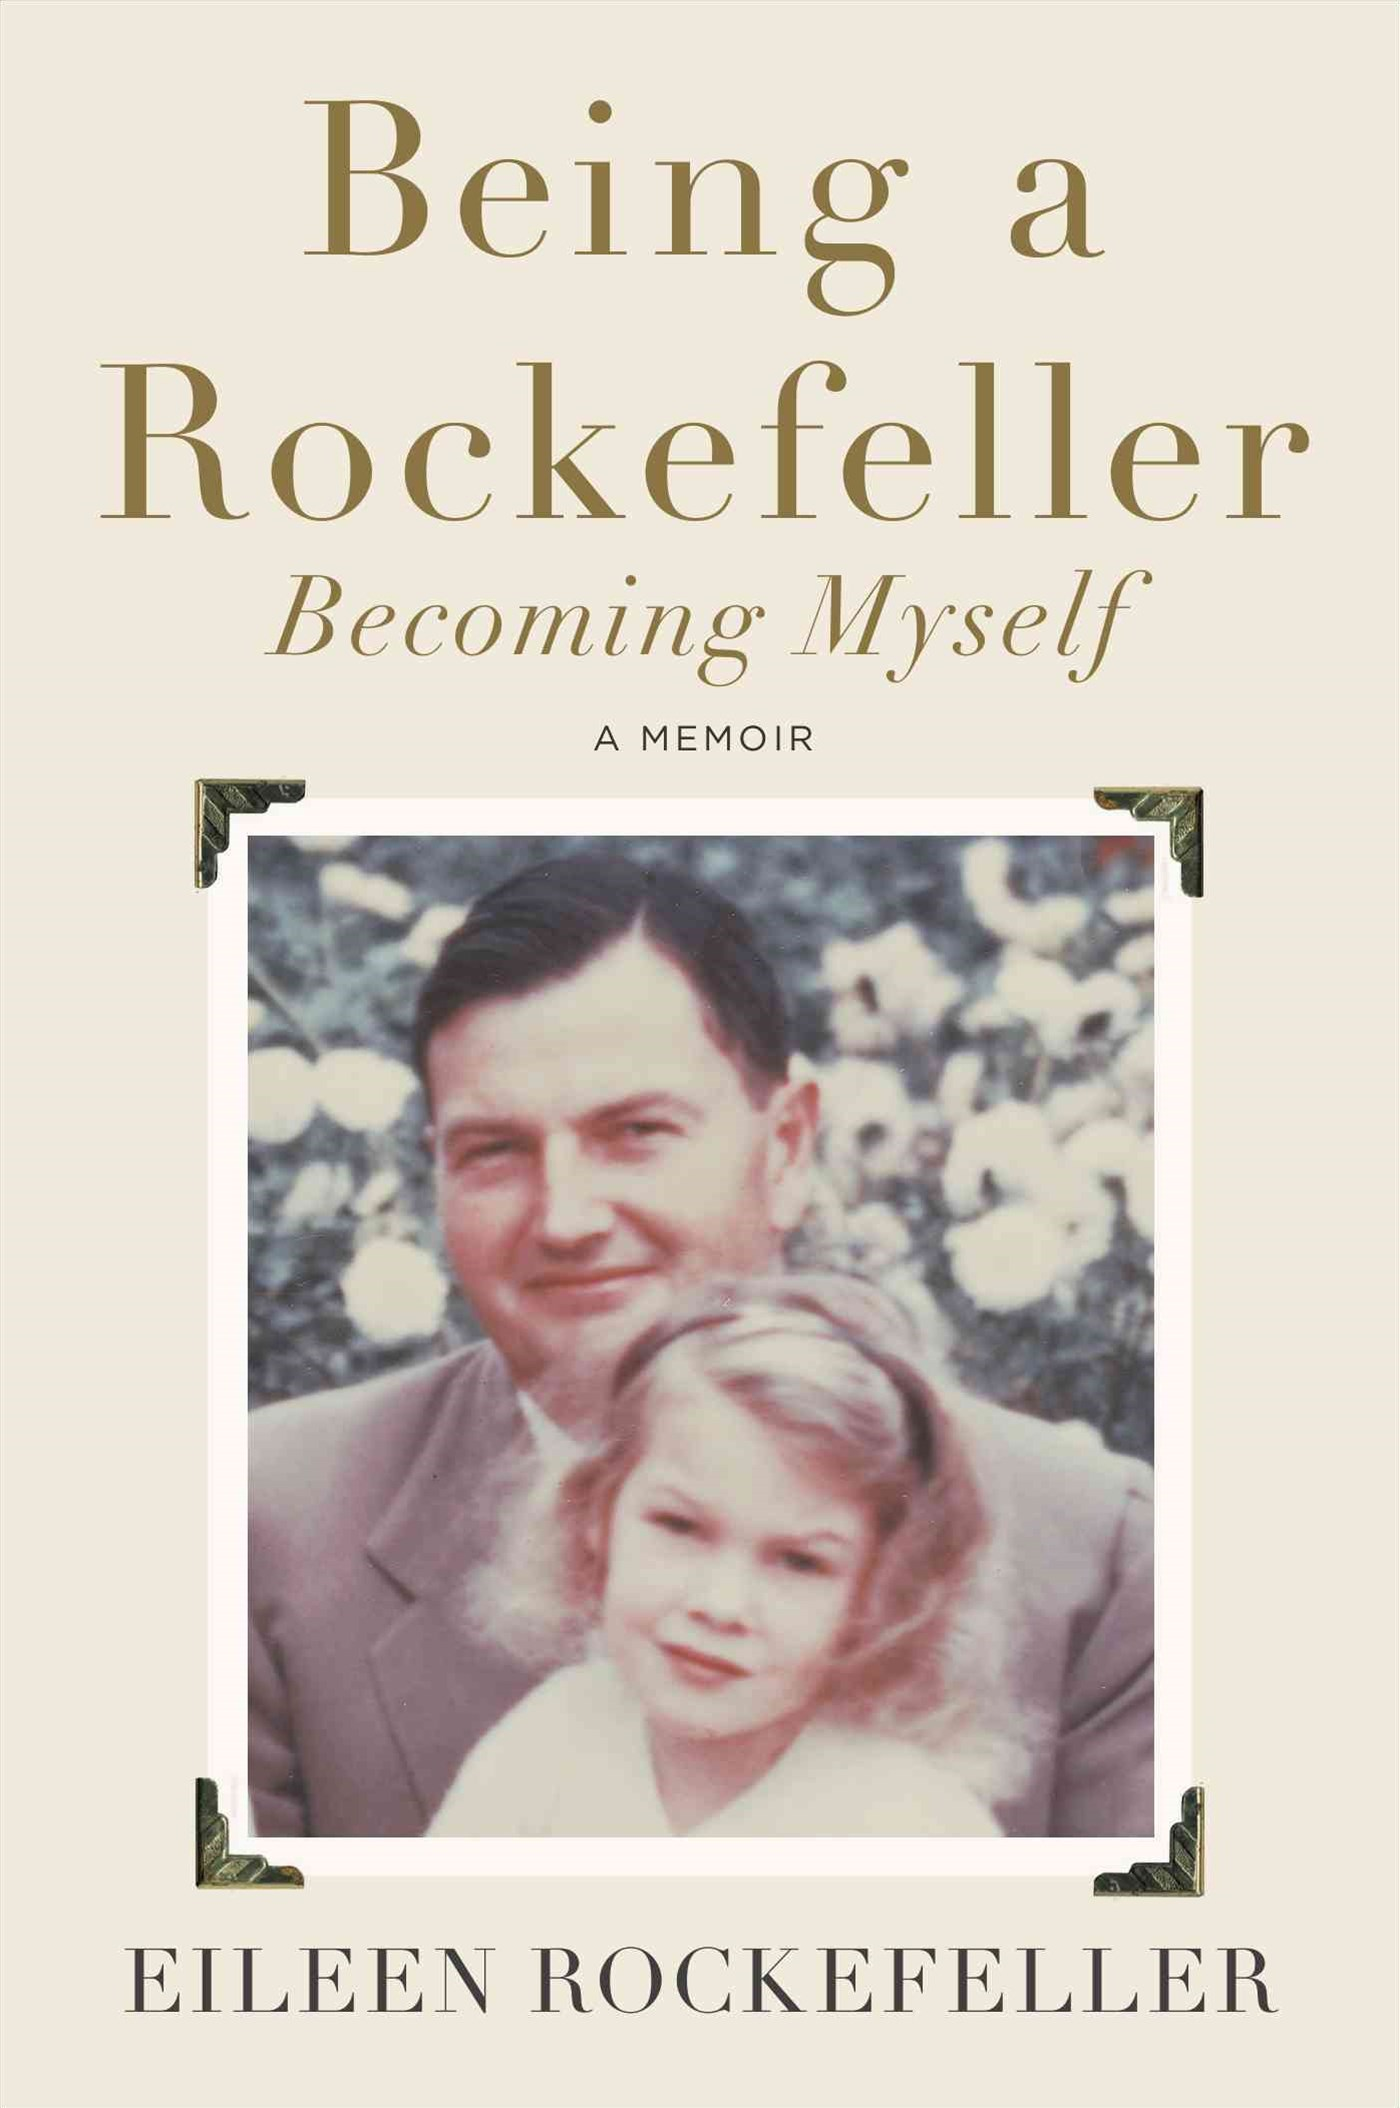 Being a Rockefeller, Becoming Myself: A Memoir